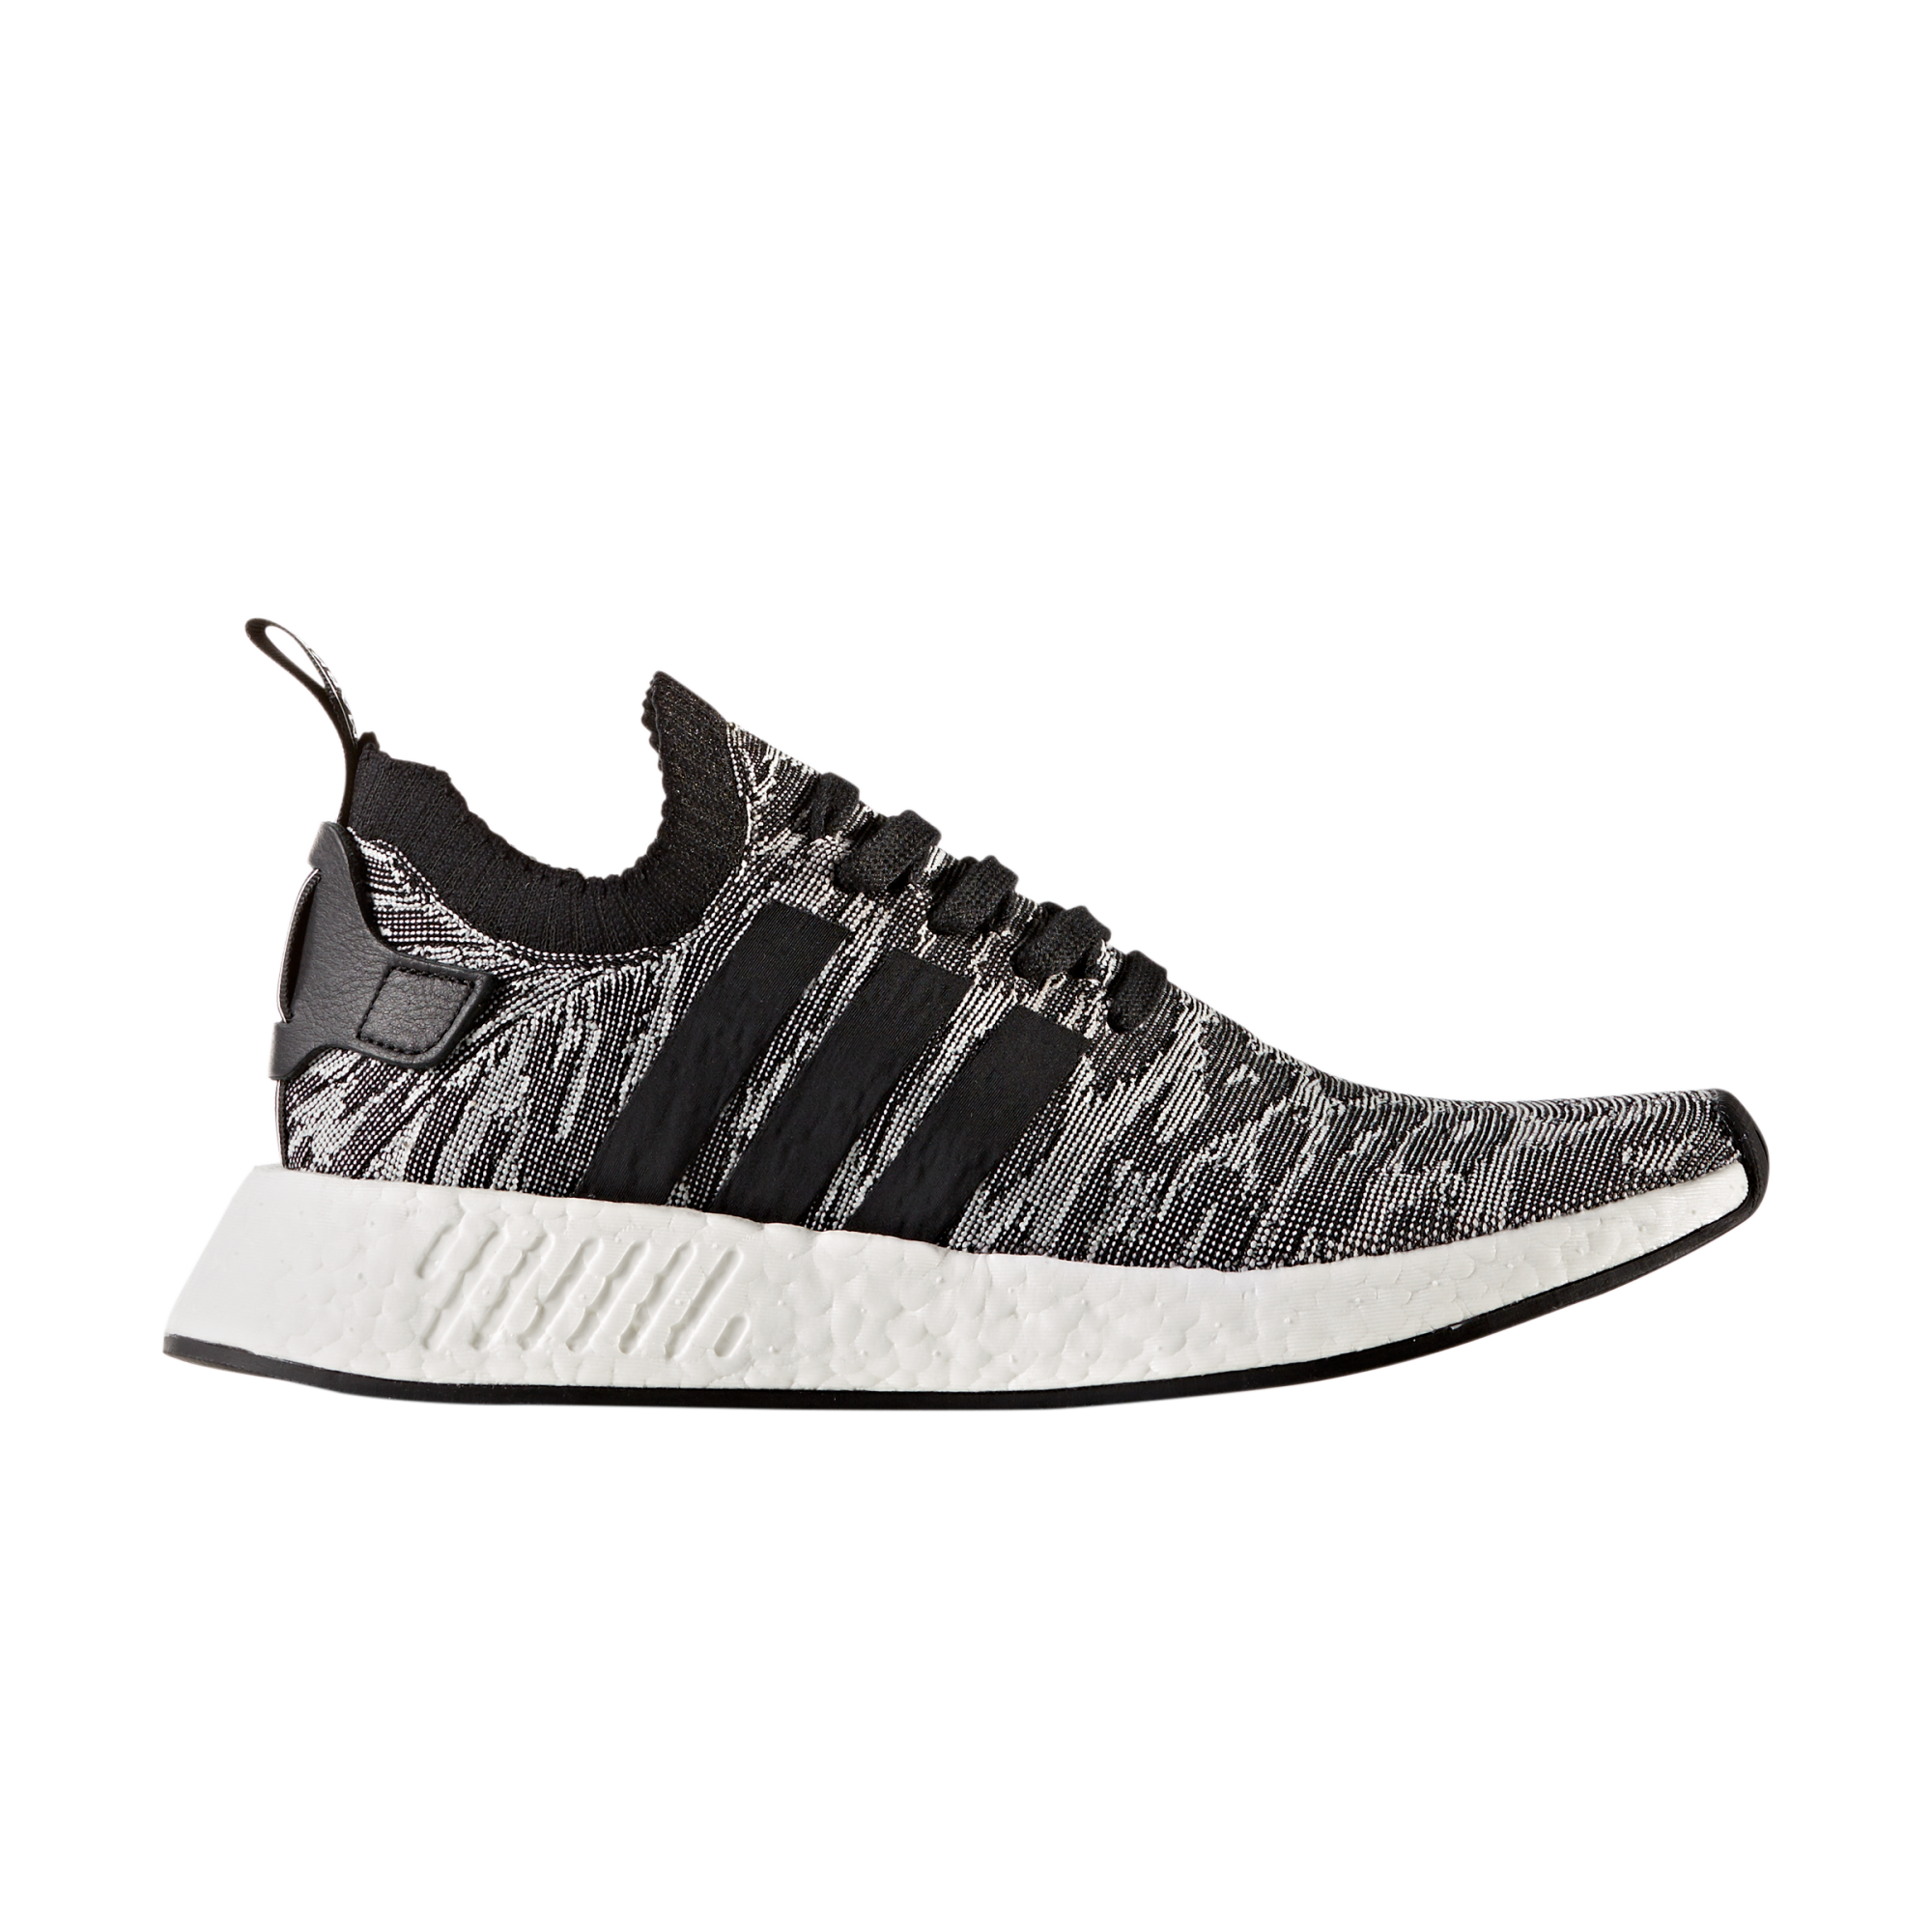 adidas NMD R1 Primeknit Men\u0027s Casual Shoe. Sale Price$170.00. 3.7 out of 5  stars. Read reviews.